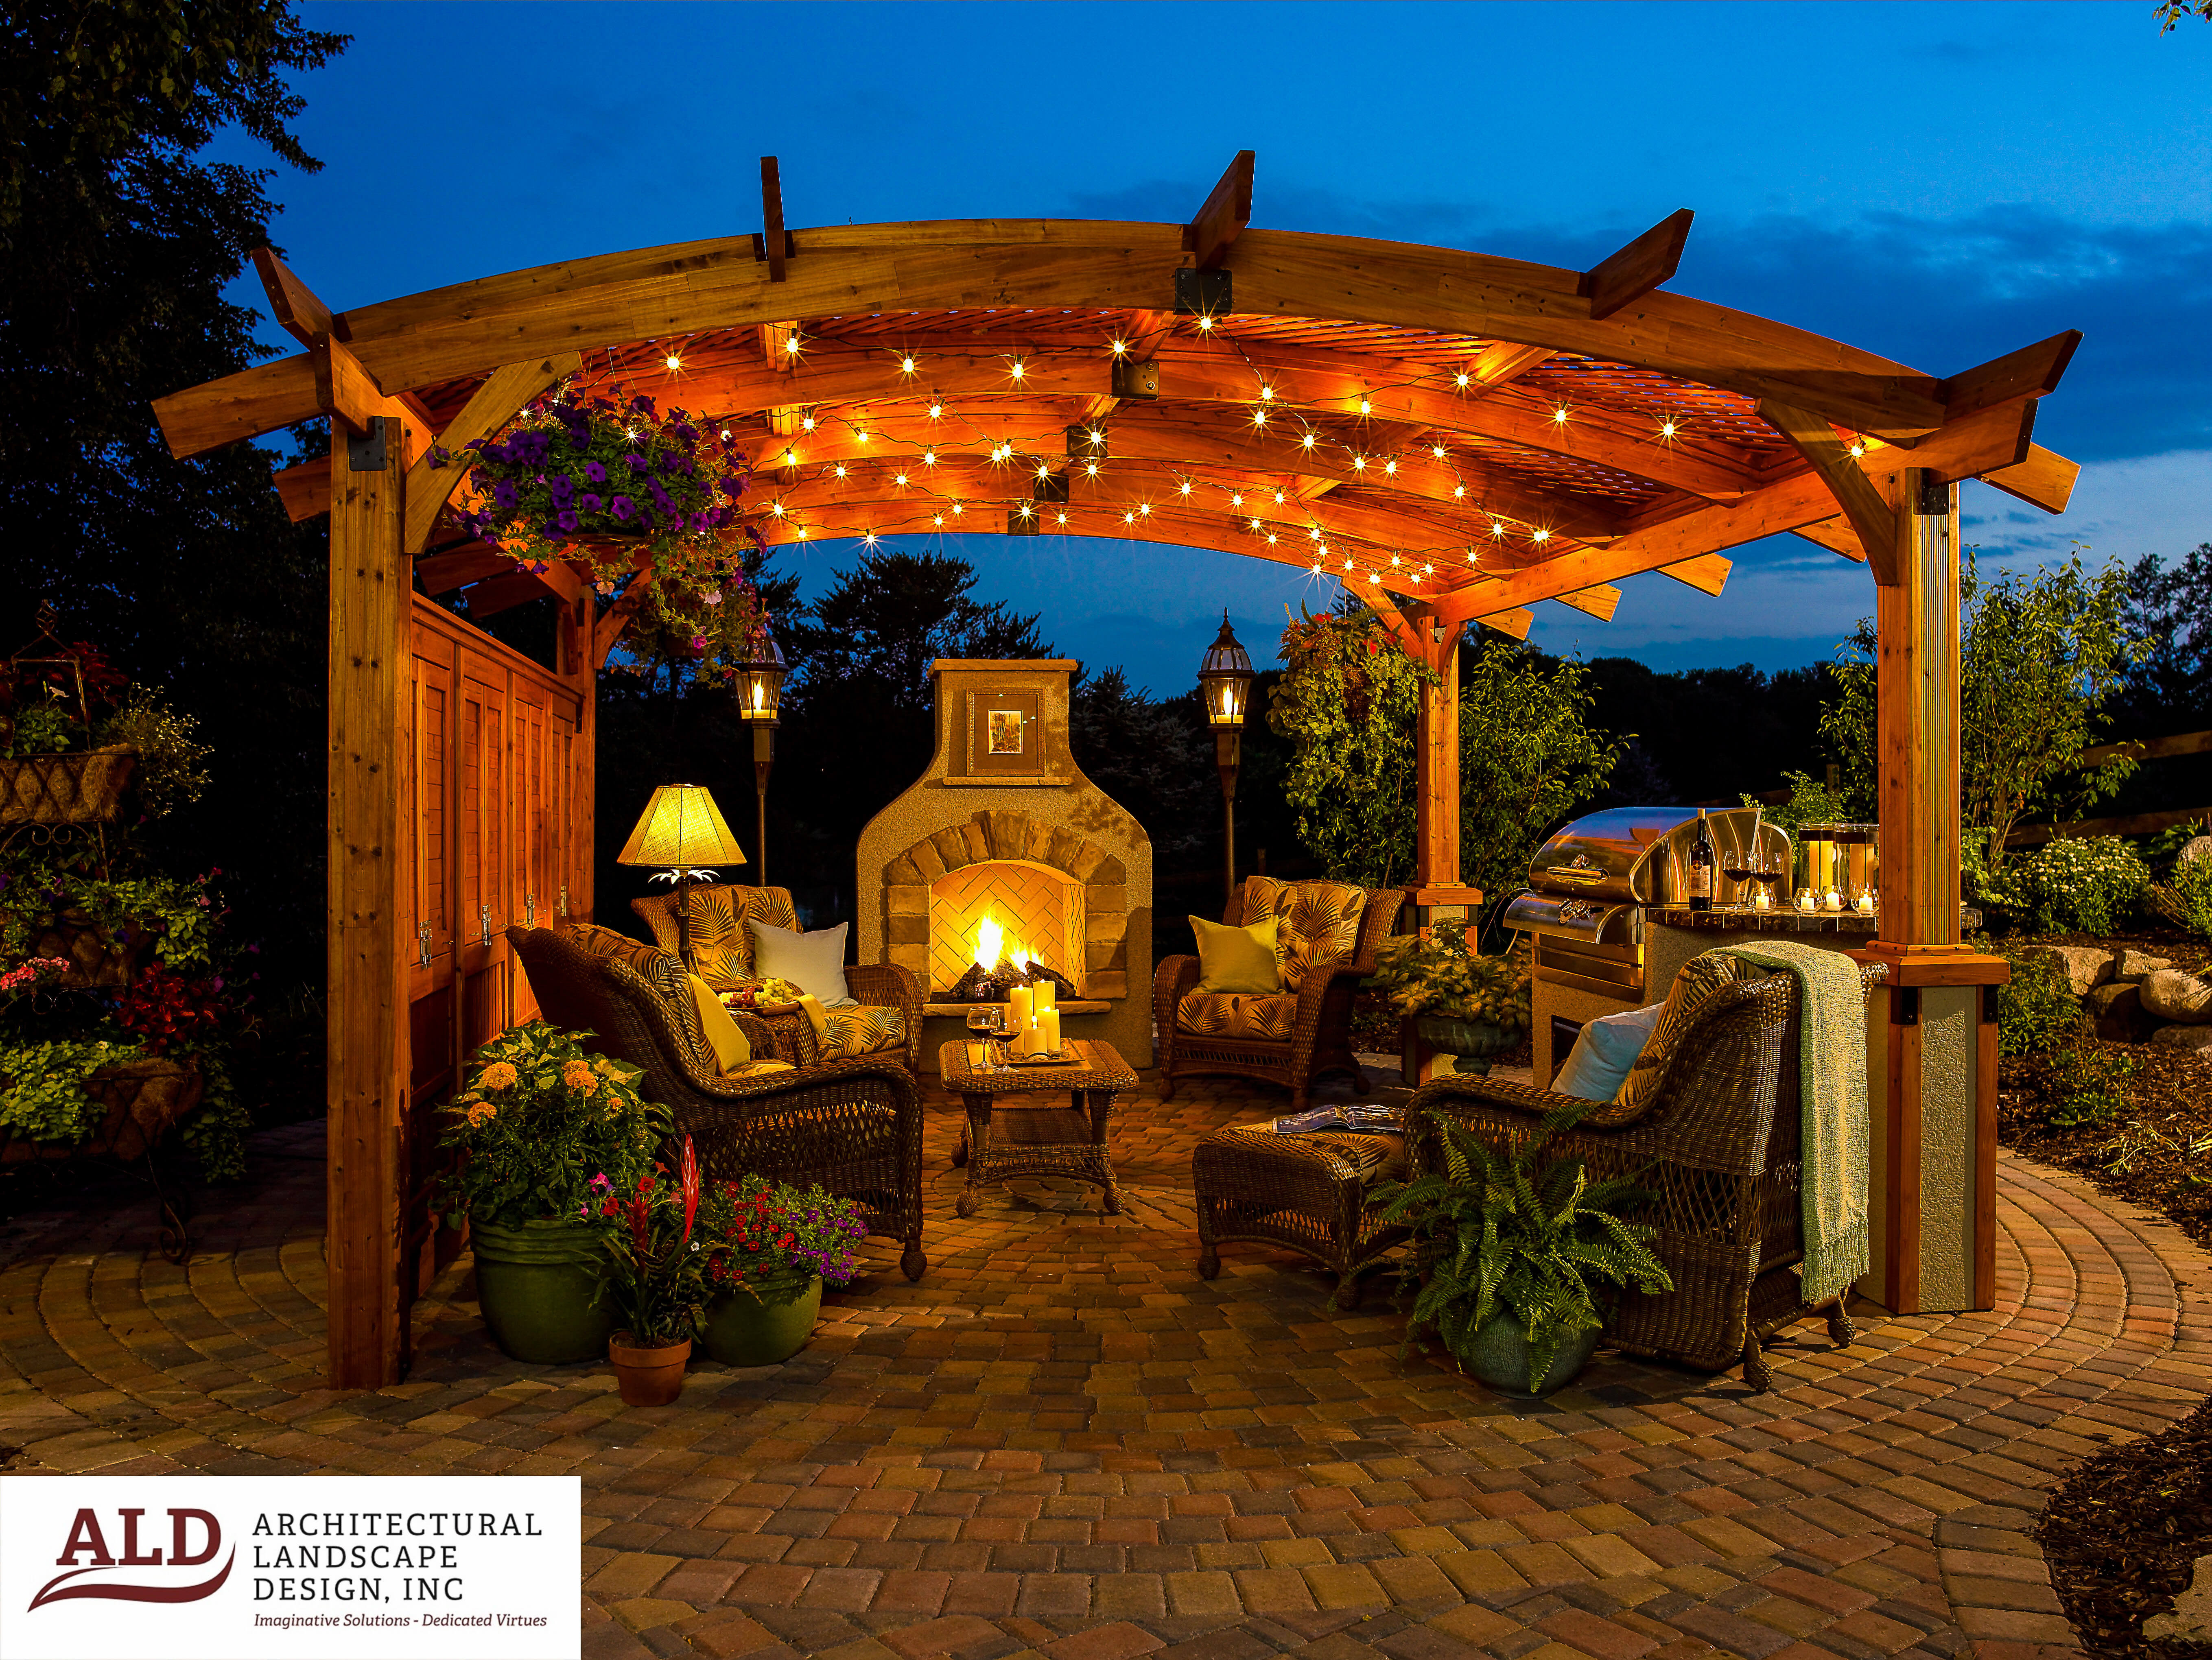 Professional Lighting Ideas To Create The Perfect Mood In Your Yard Architectural Landscape Design